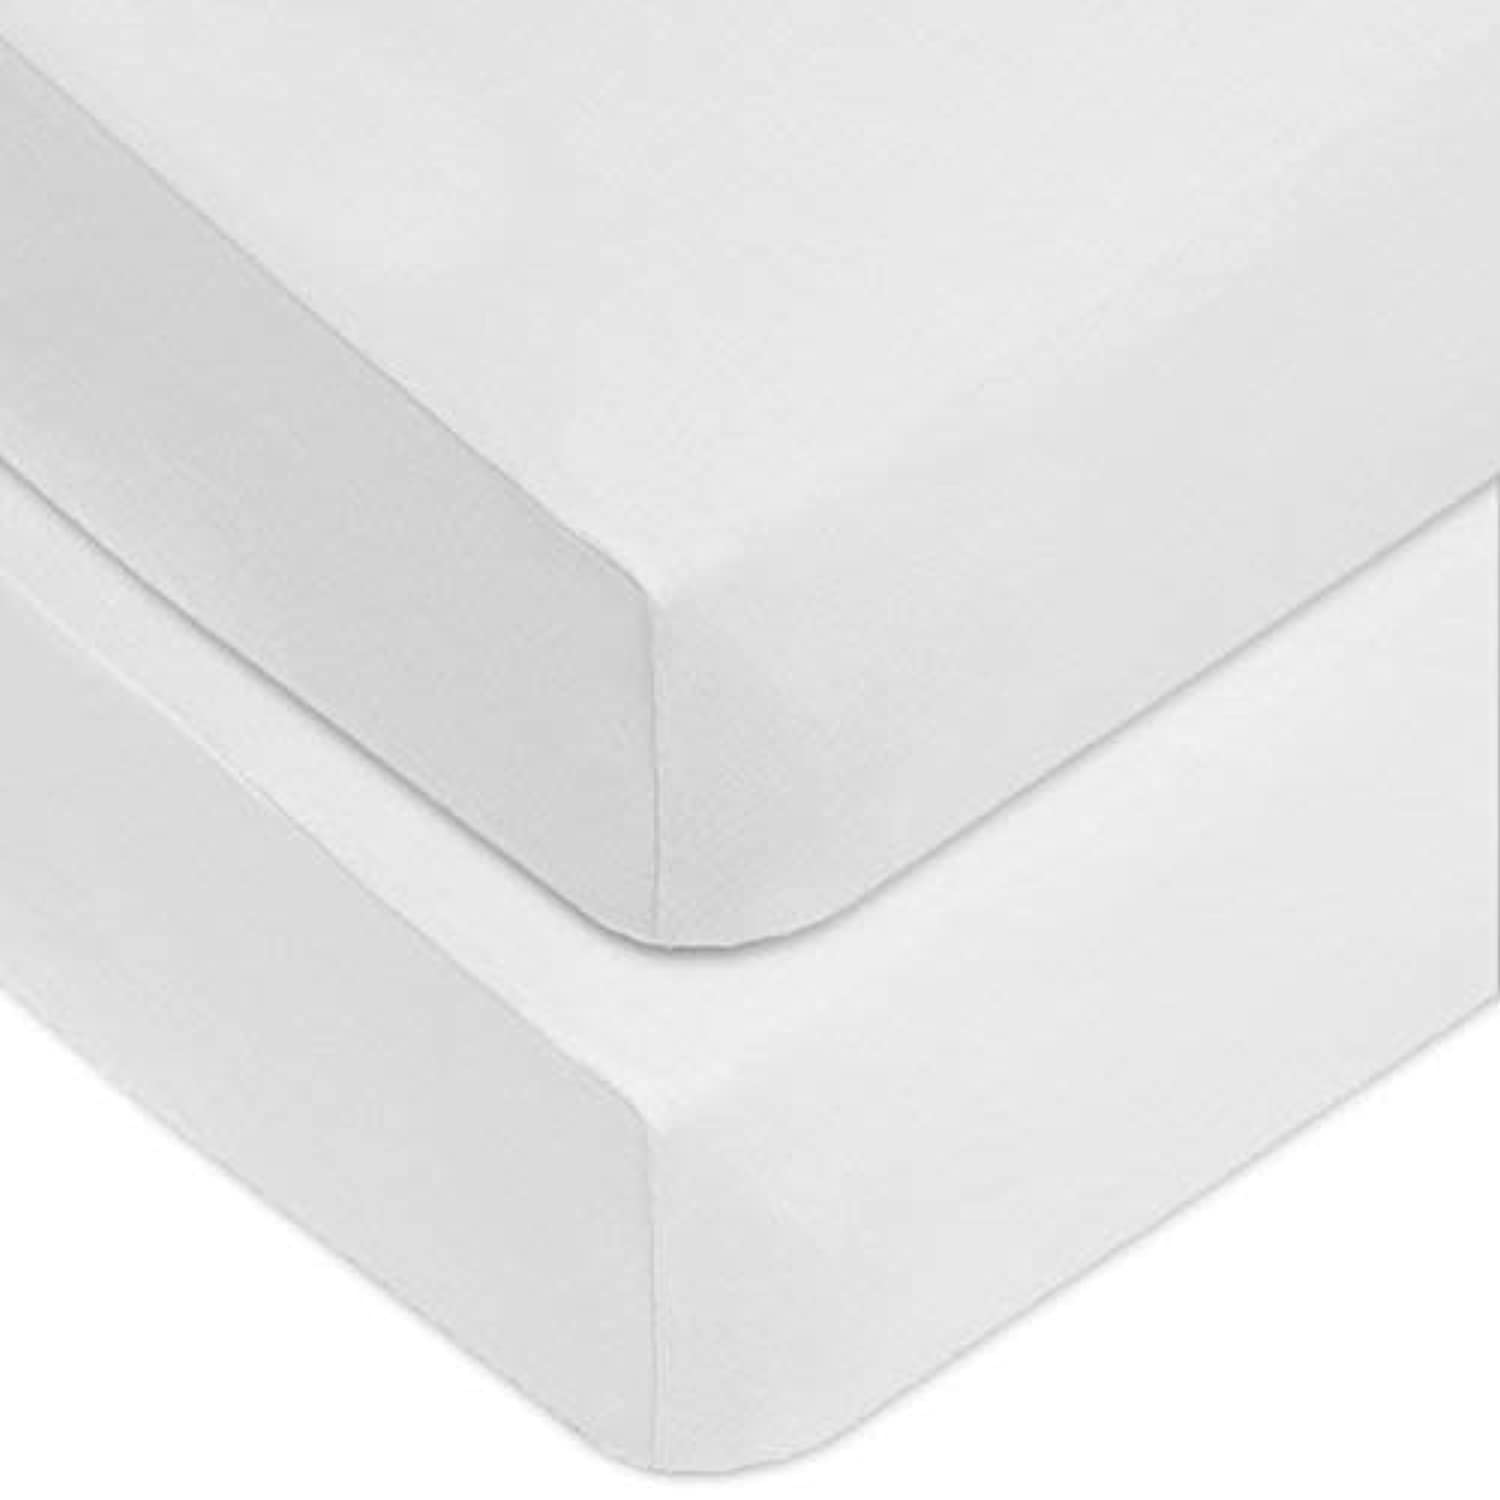 American Baby Company 2 Piece 100% Cotton Value Jersey Knit Fitted Crib Sheet White [並行輸入品]